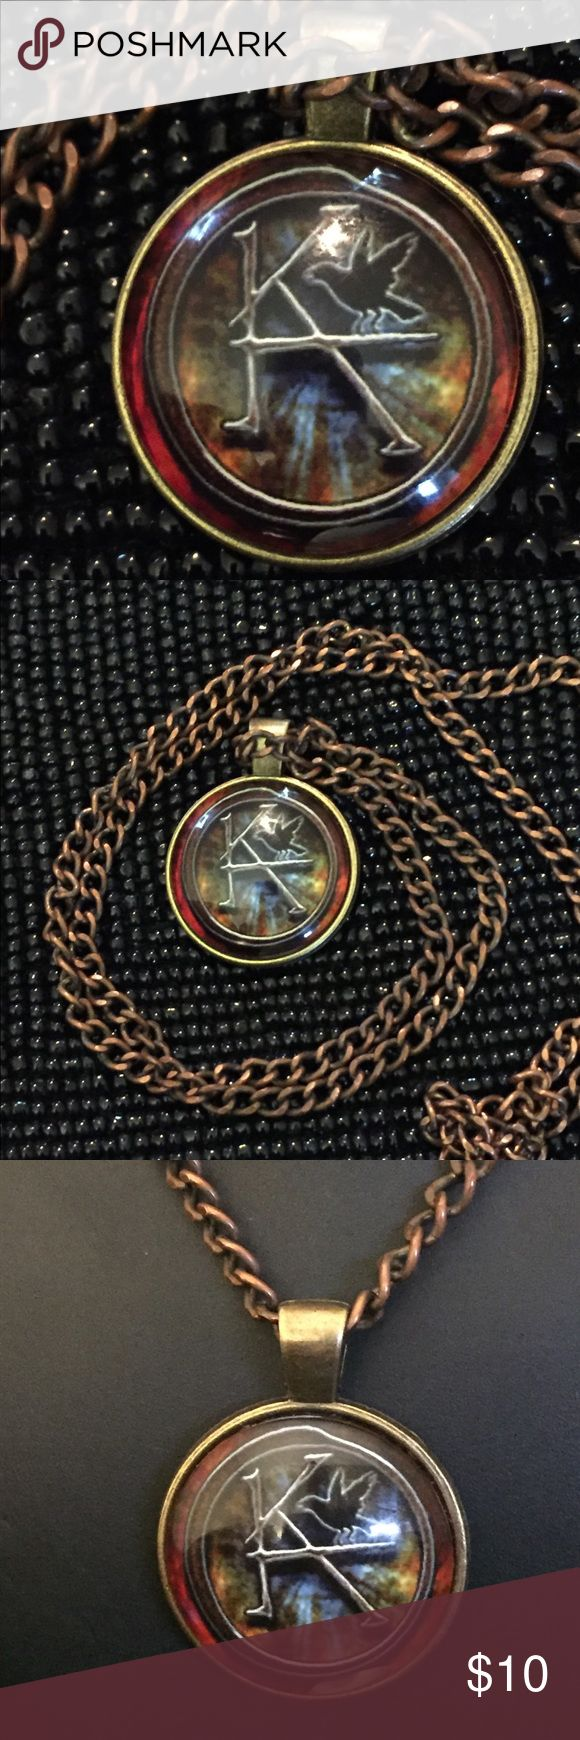 "Cult Of Personality, KA Necklace The Dark Tower Emporiama's Cult Of Personality, KA Pendant Necklace; The Dark Tower.  These Pendants Are A Glass Cabachon Set In Bronze Metal.   They Measure 1"" In Diameter.  The Chain Measures 22"" In Length And Is Fully Adjustable.   New With Tags.   There Are Three Of These Available. Emporiama Accessories Jewelry"